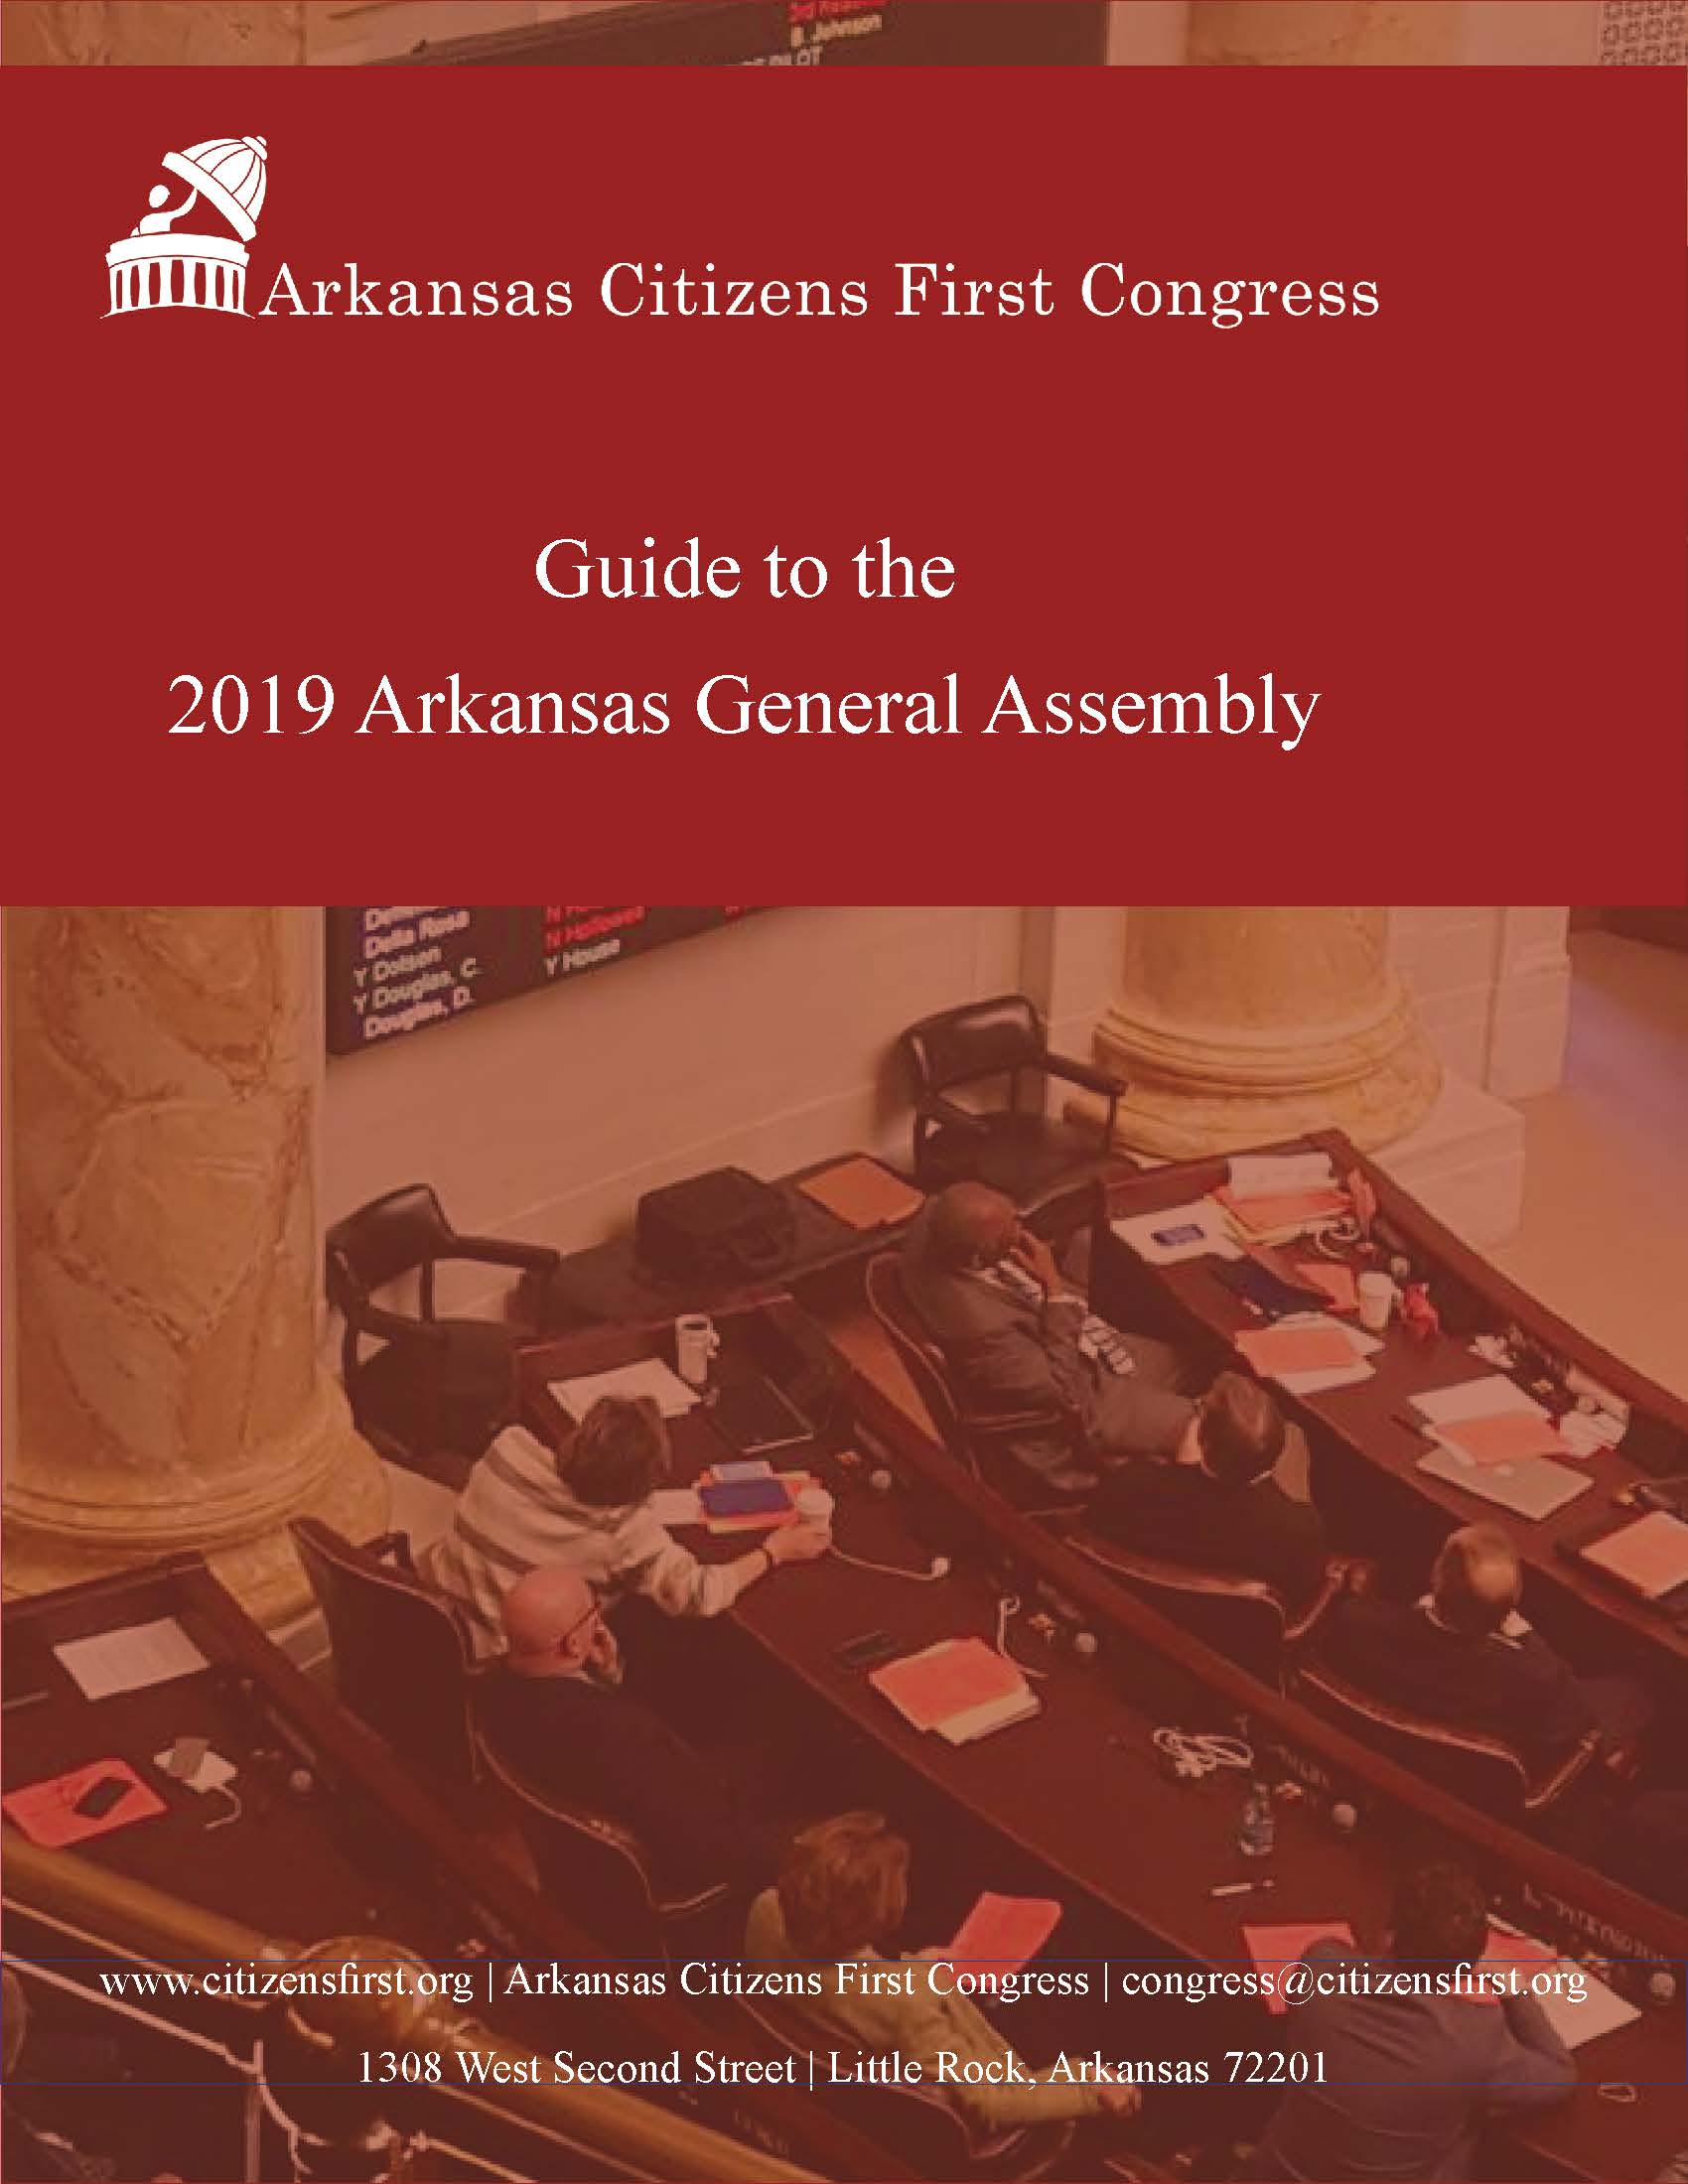 Guide to the 2019 Arkansas General Assembly_Page_01.jpg